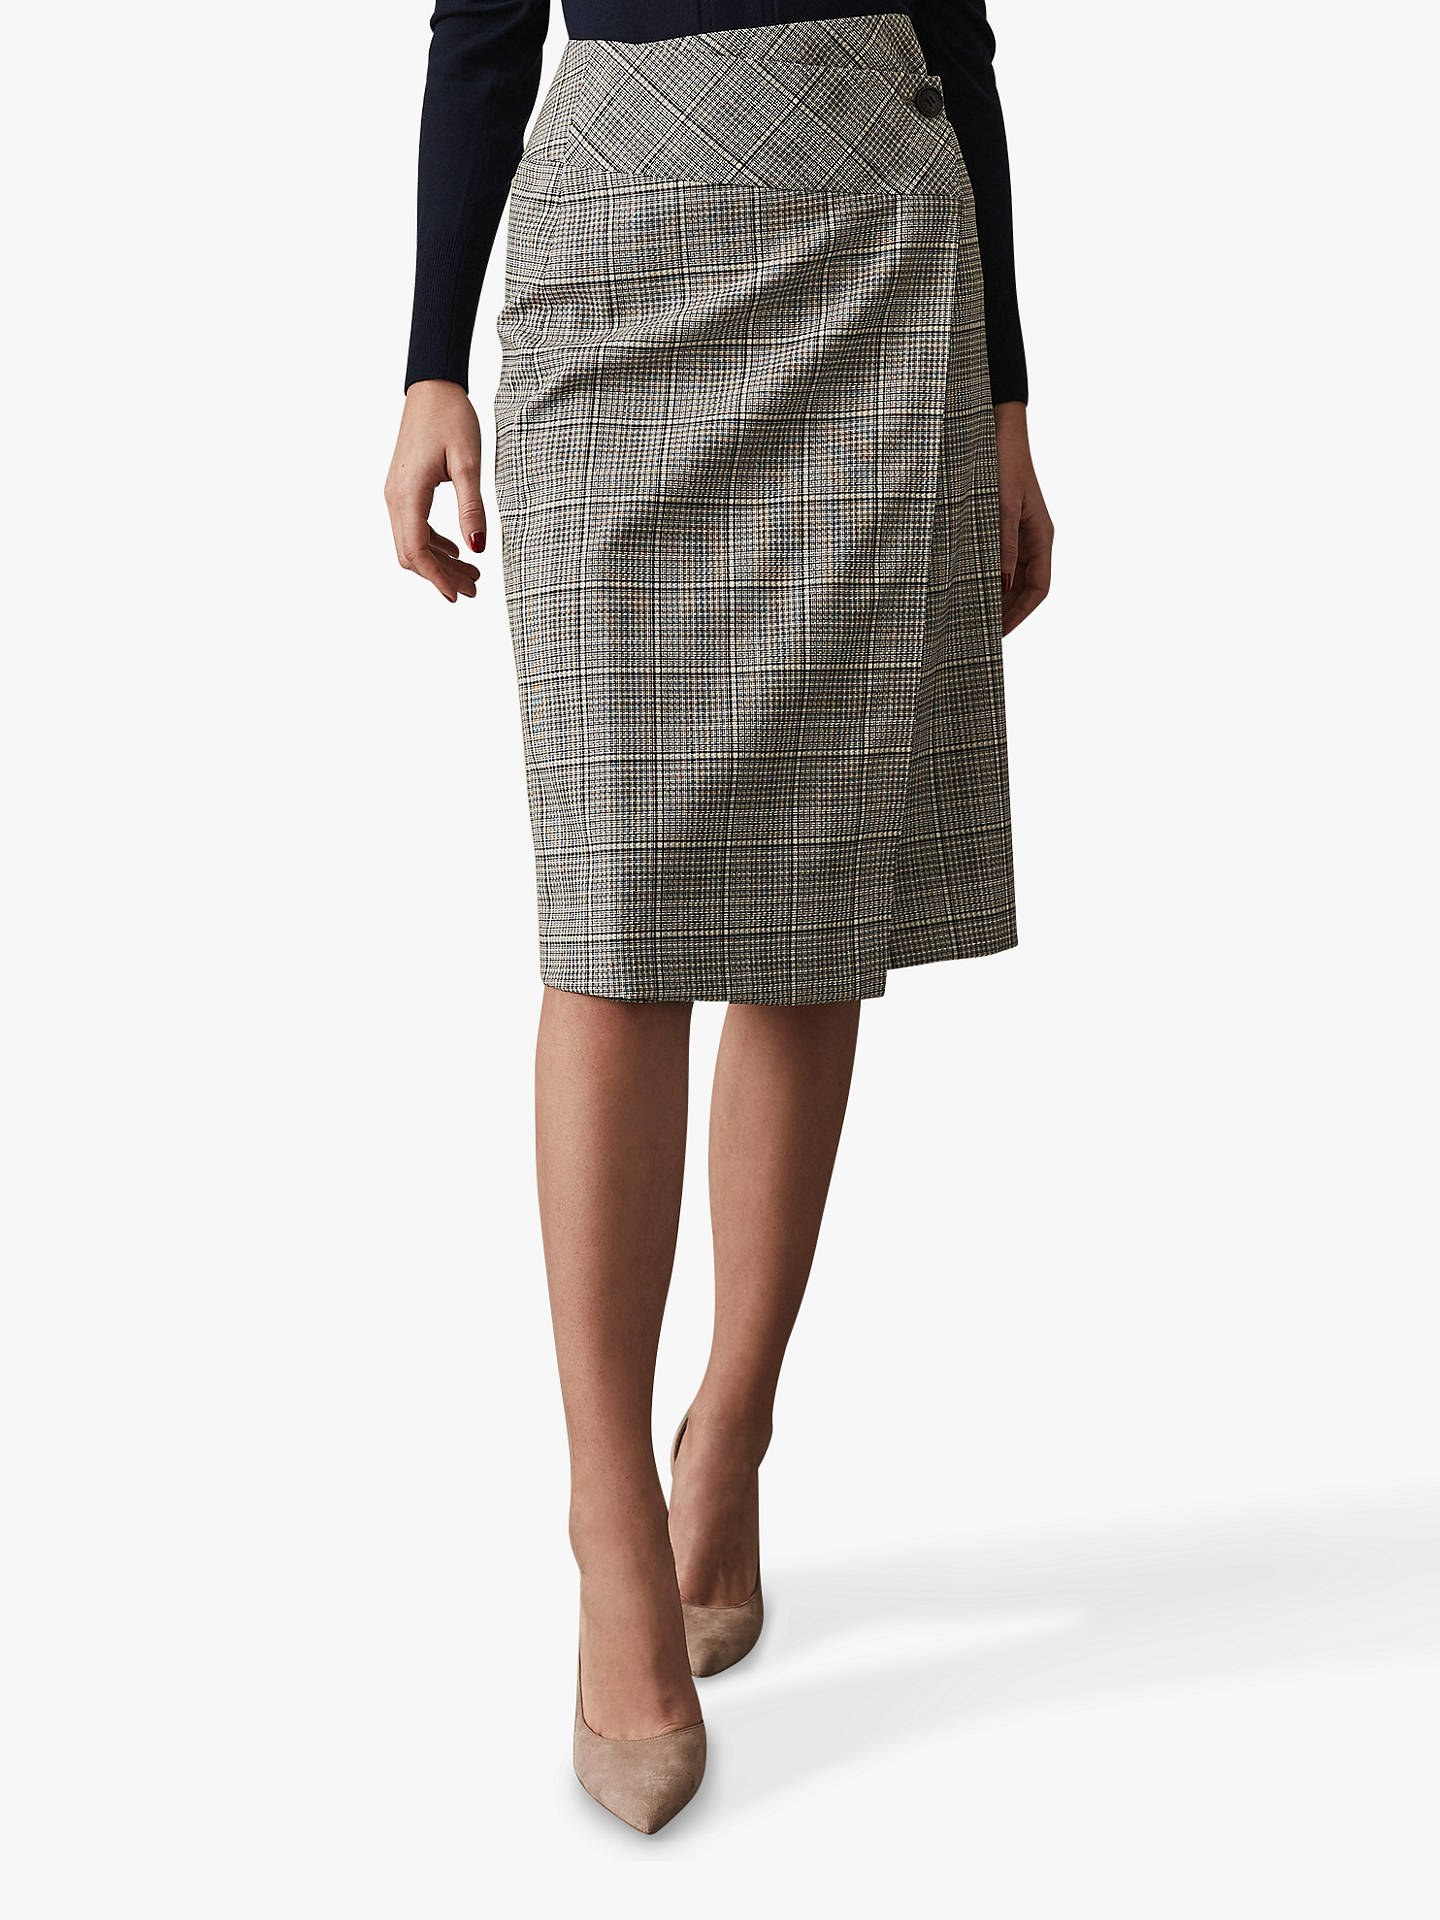 73408bbbdec3 Buy Reiss Alenna Check Tailored Pencil Skirt, Black/White, 6 Online at  johnlewis ...